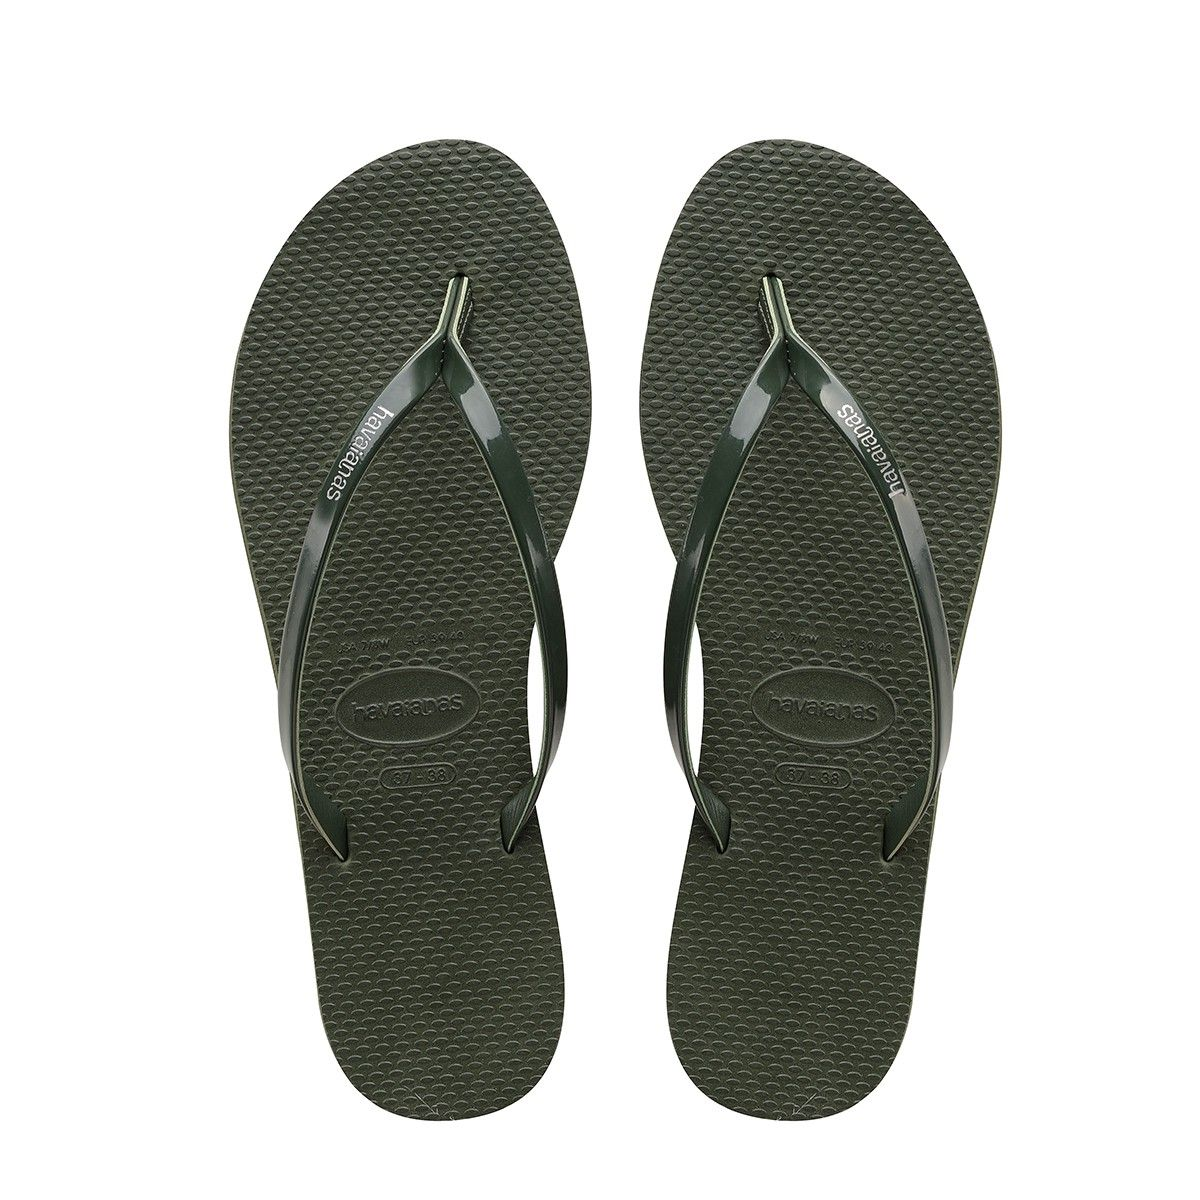 Havaianas Top Sandal Slippers Beach Shoes Toe Post Unisex Brown New All Sizes